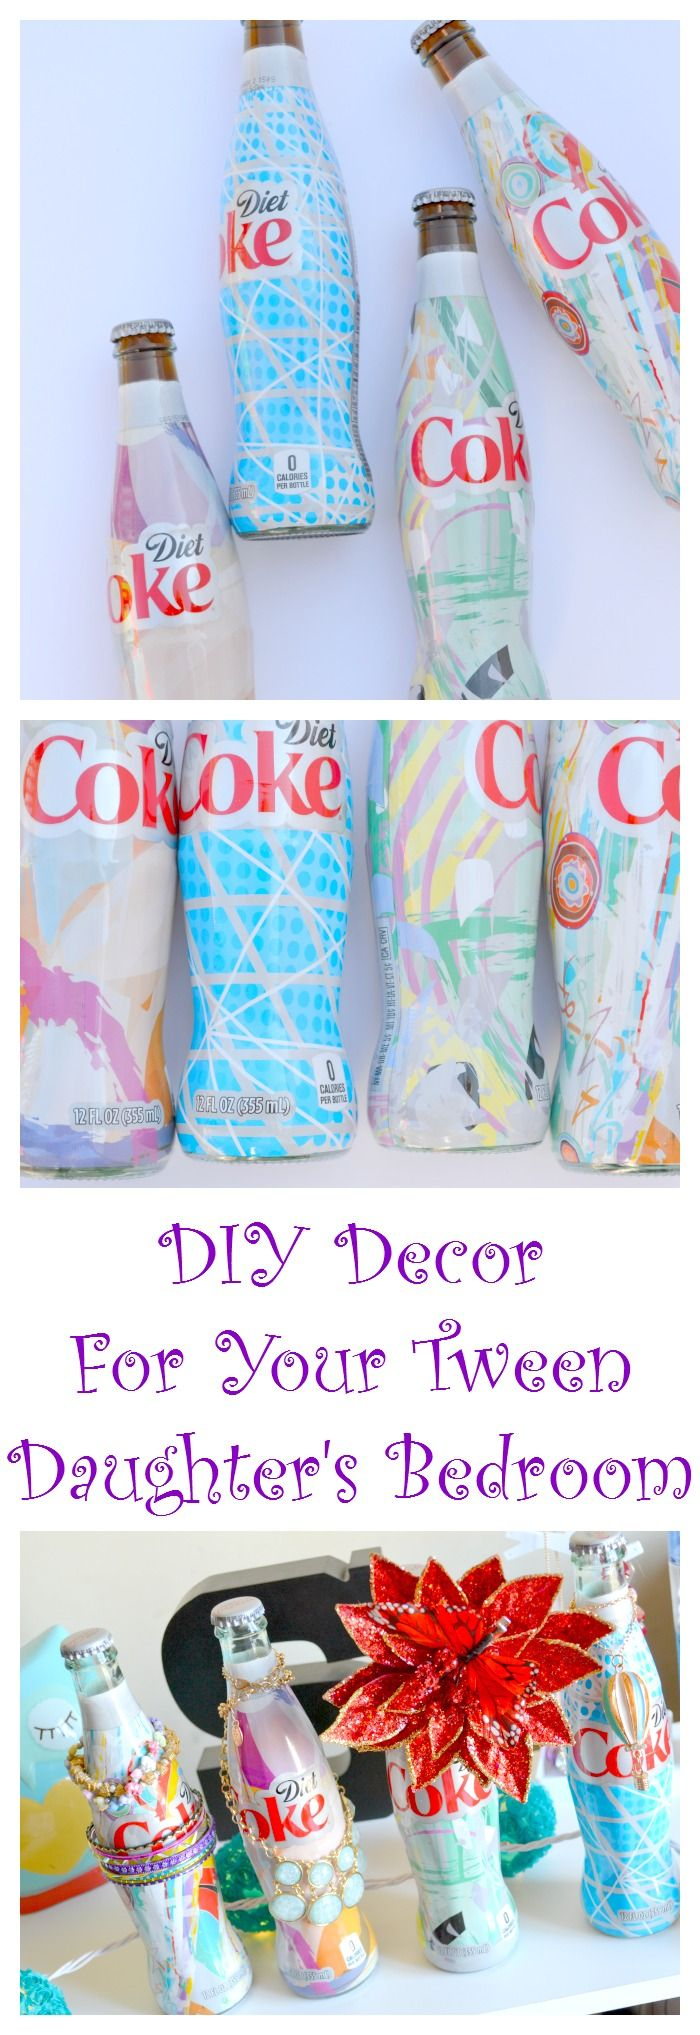 Make this DIY decor for your tween's bedroom. This is an easy craft that be done with  decorative soda bottles. They can be used as jewelry holders, flower vases, and to match the decor!